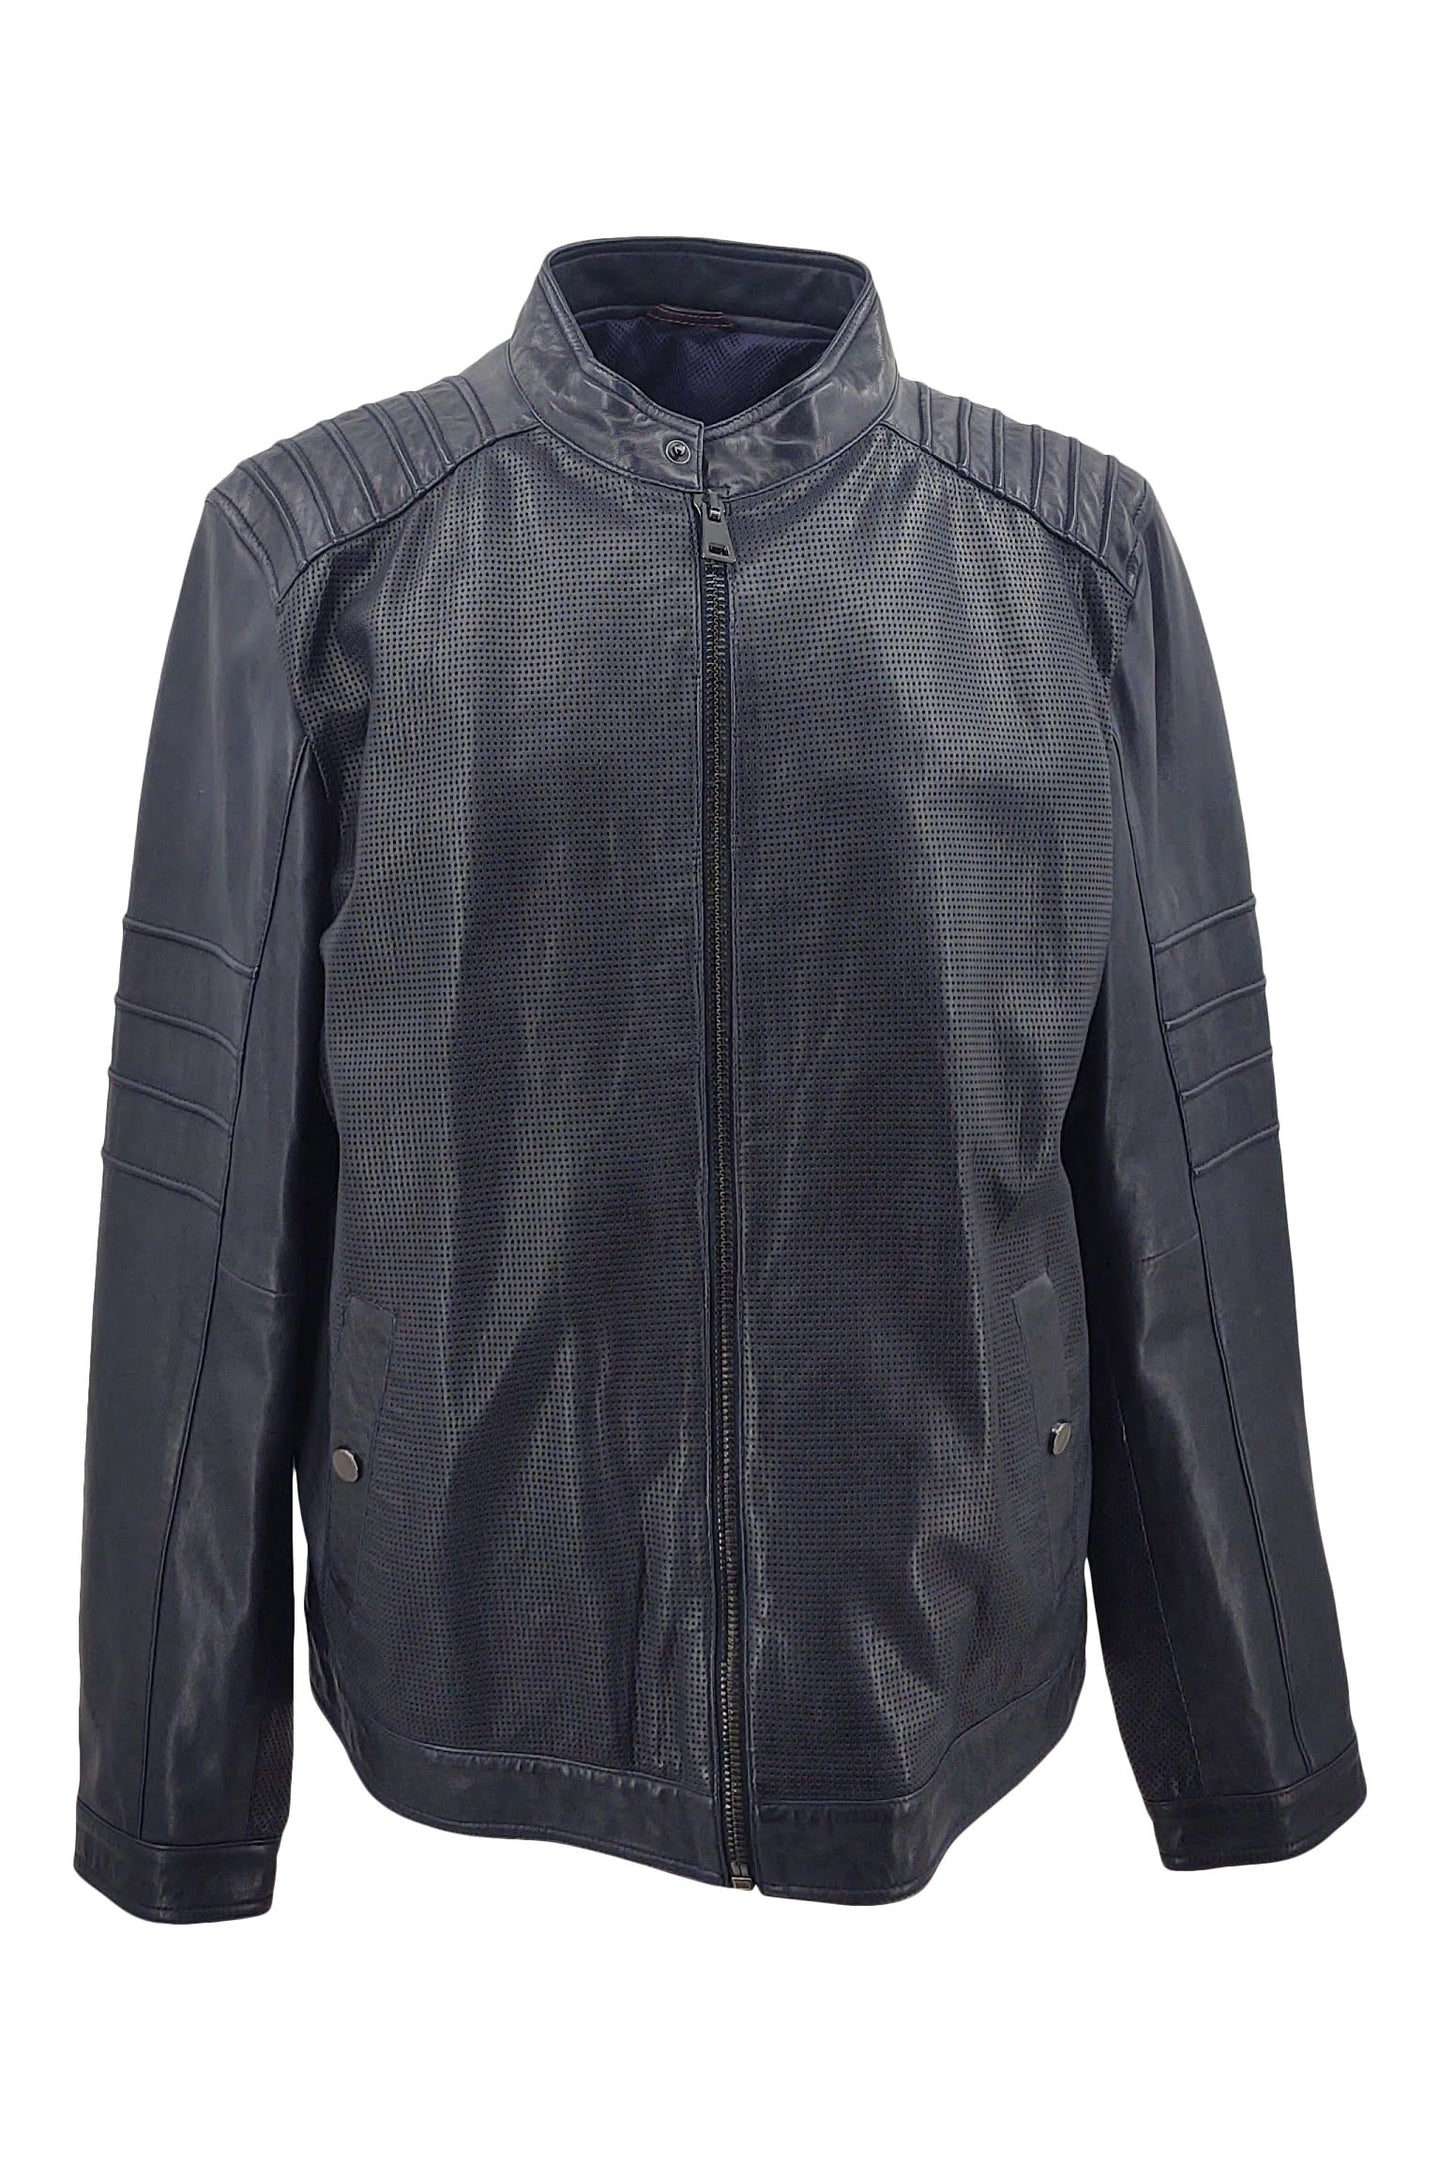 New Nicola - Lamb Liverpool Leather - Man - Navy / Læderjakke | STAMPE PELS